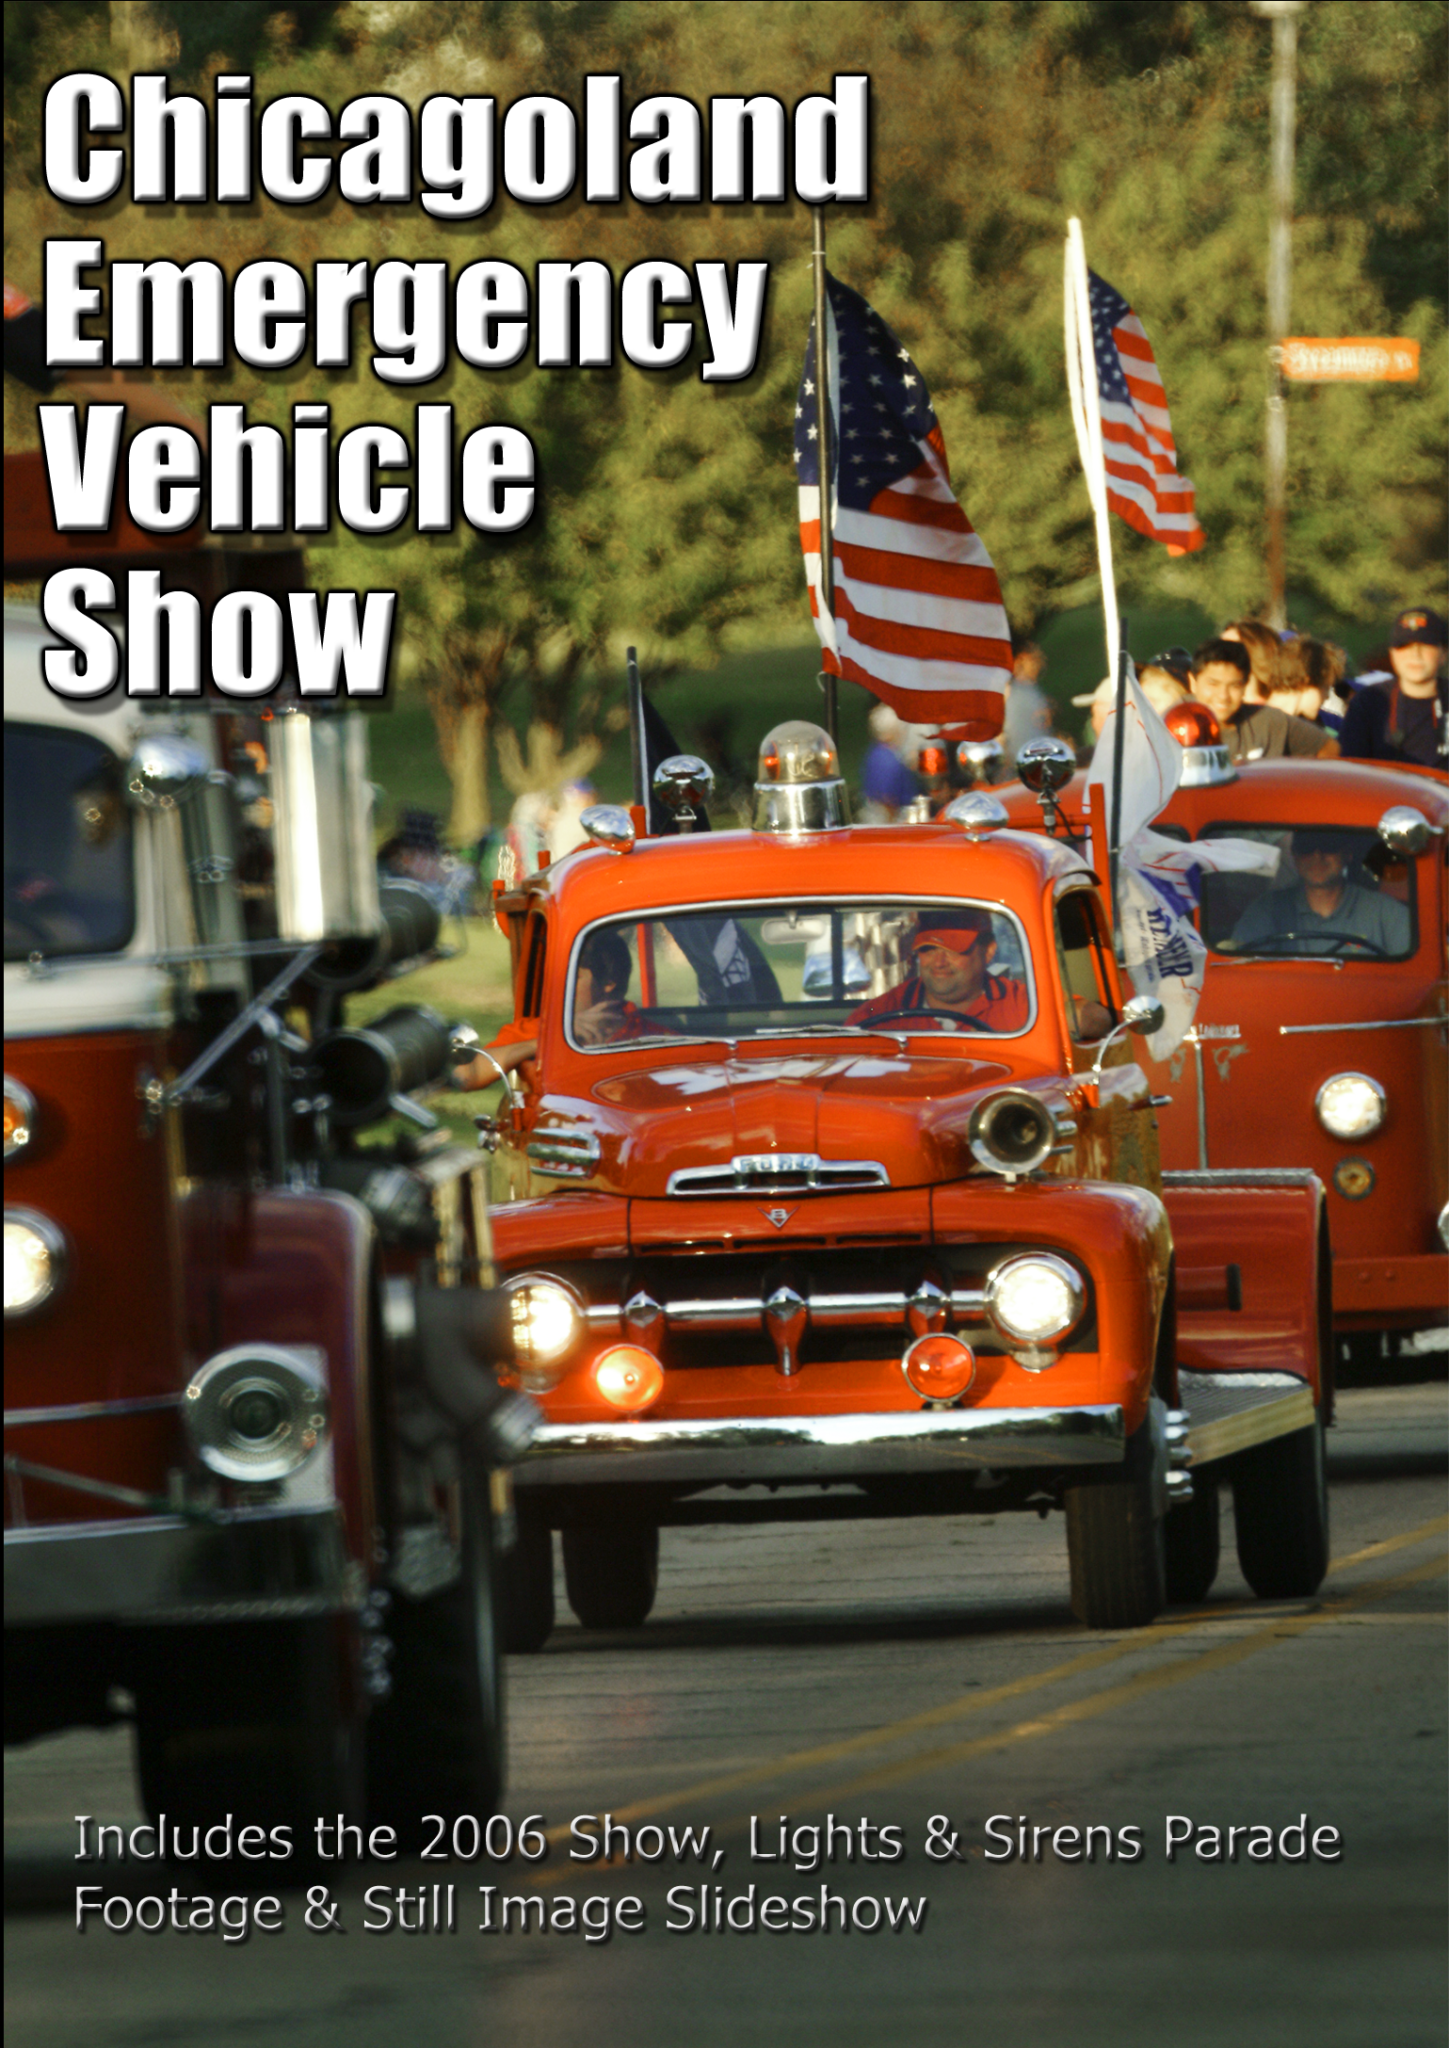 Chicagoland Emergency Vehicle Show